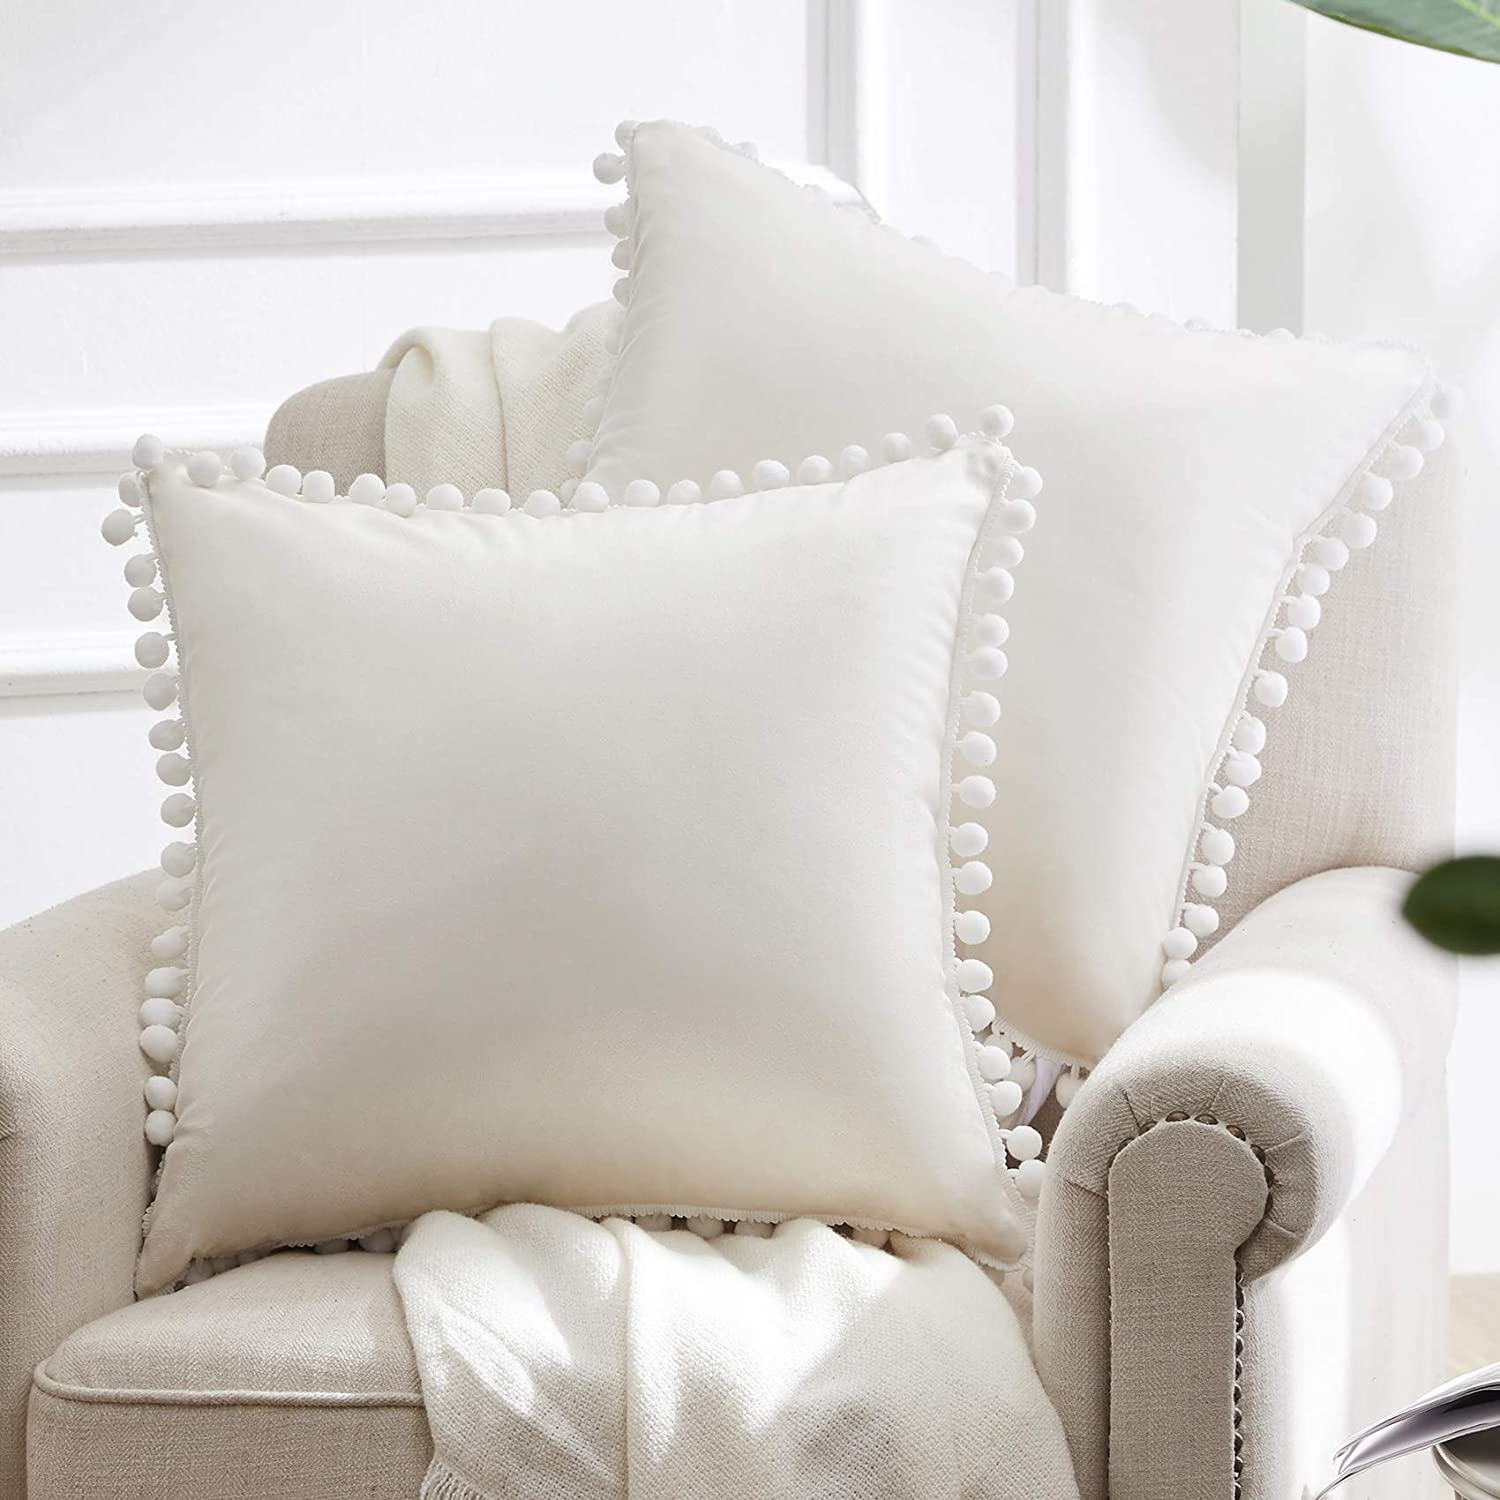 WESTERN Max 58% OFF HOME WH Decorative Throw Pillow with So Max 80% OFF Covers Pom Poms